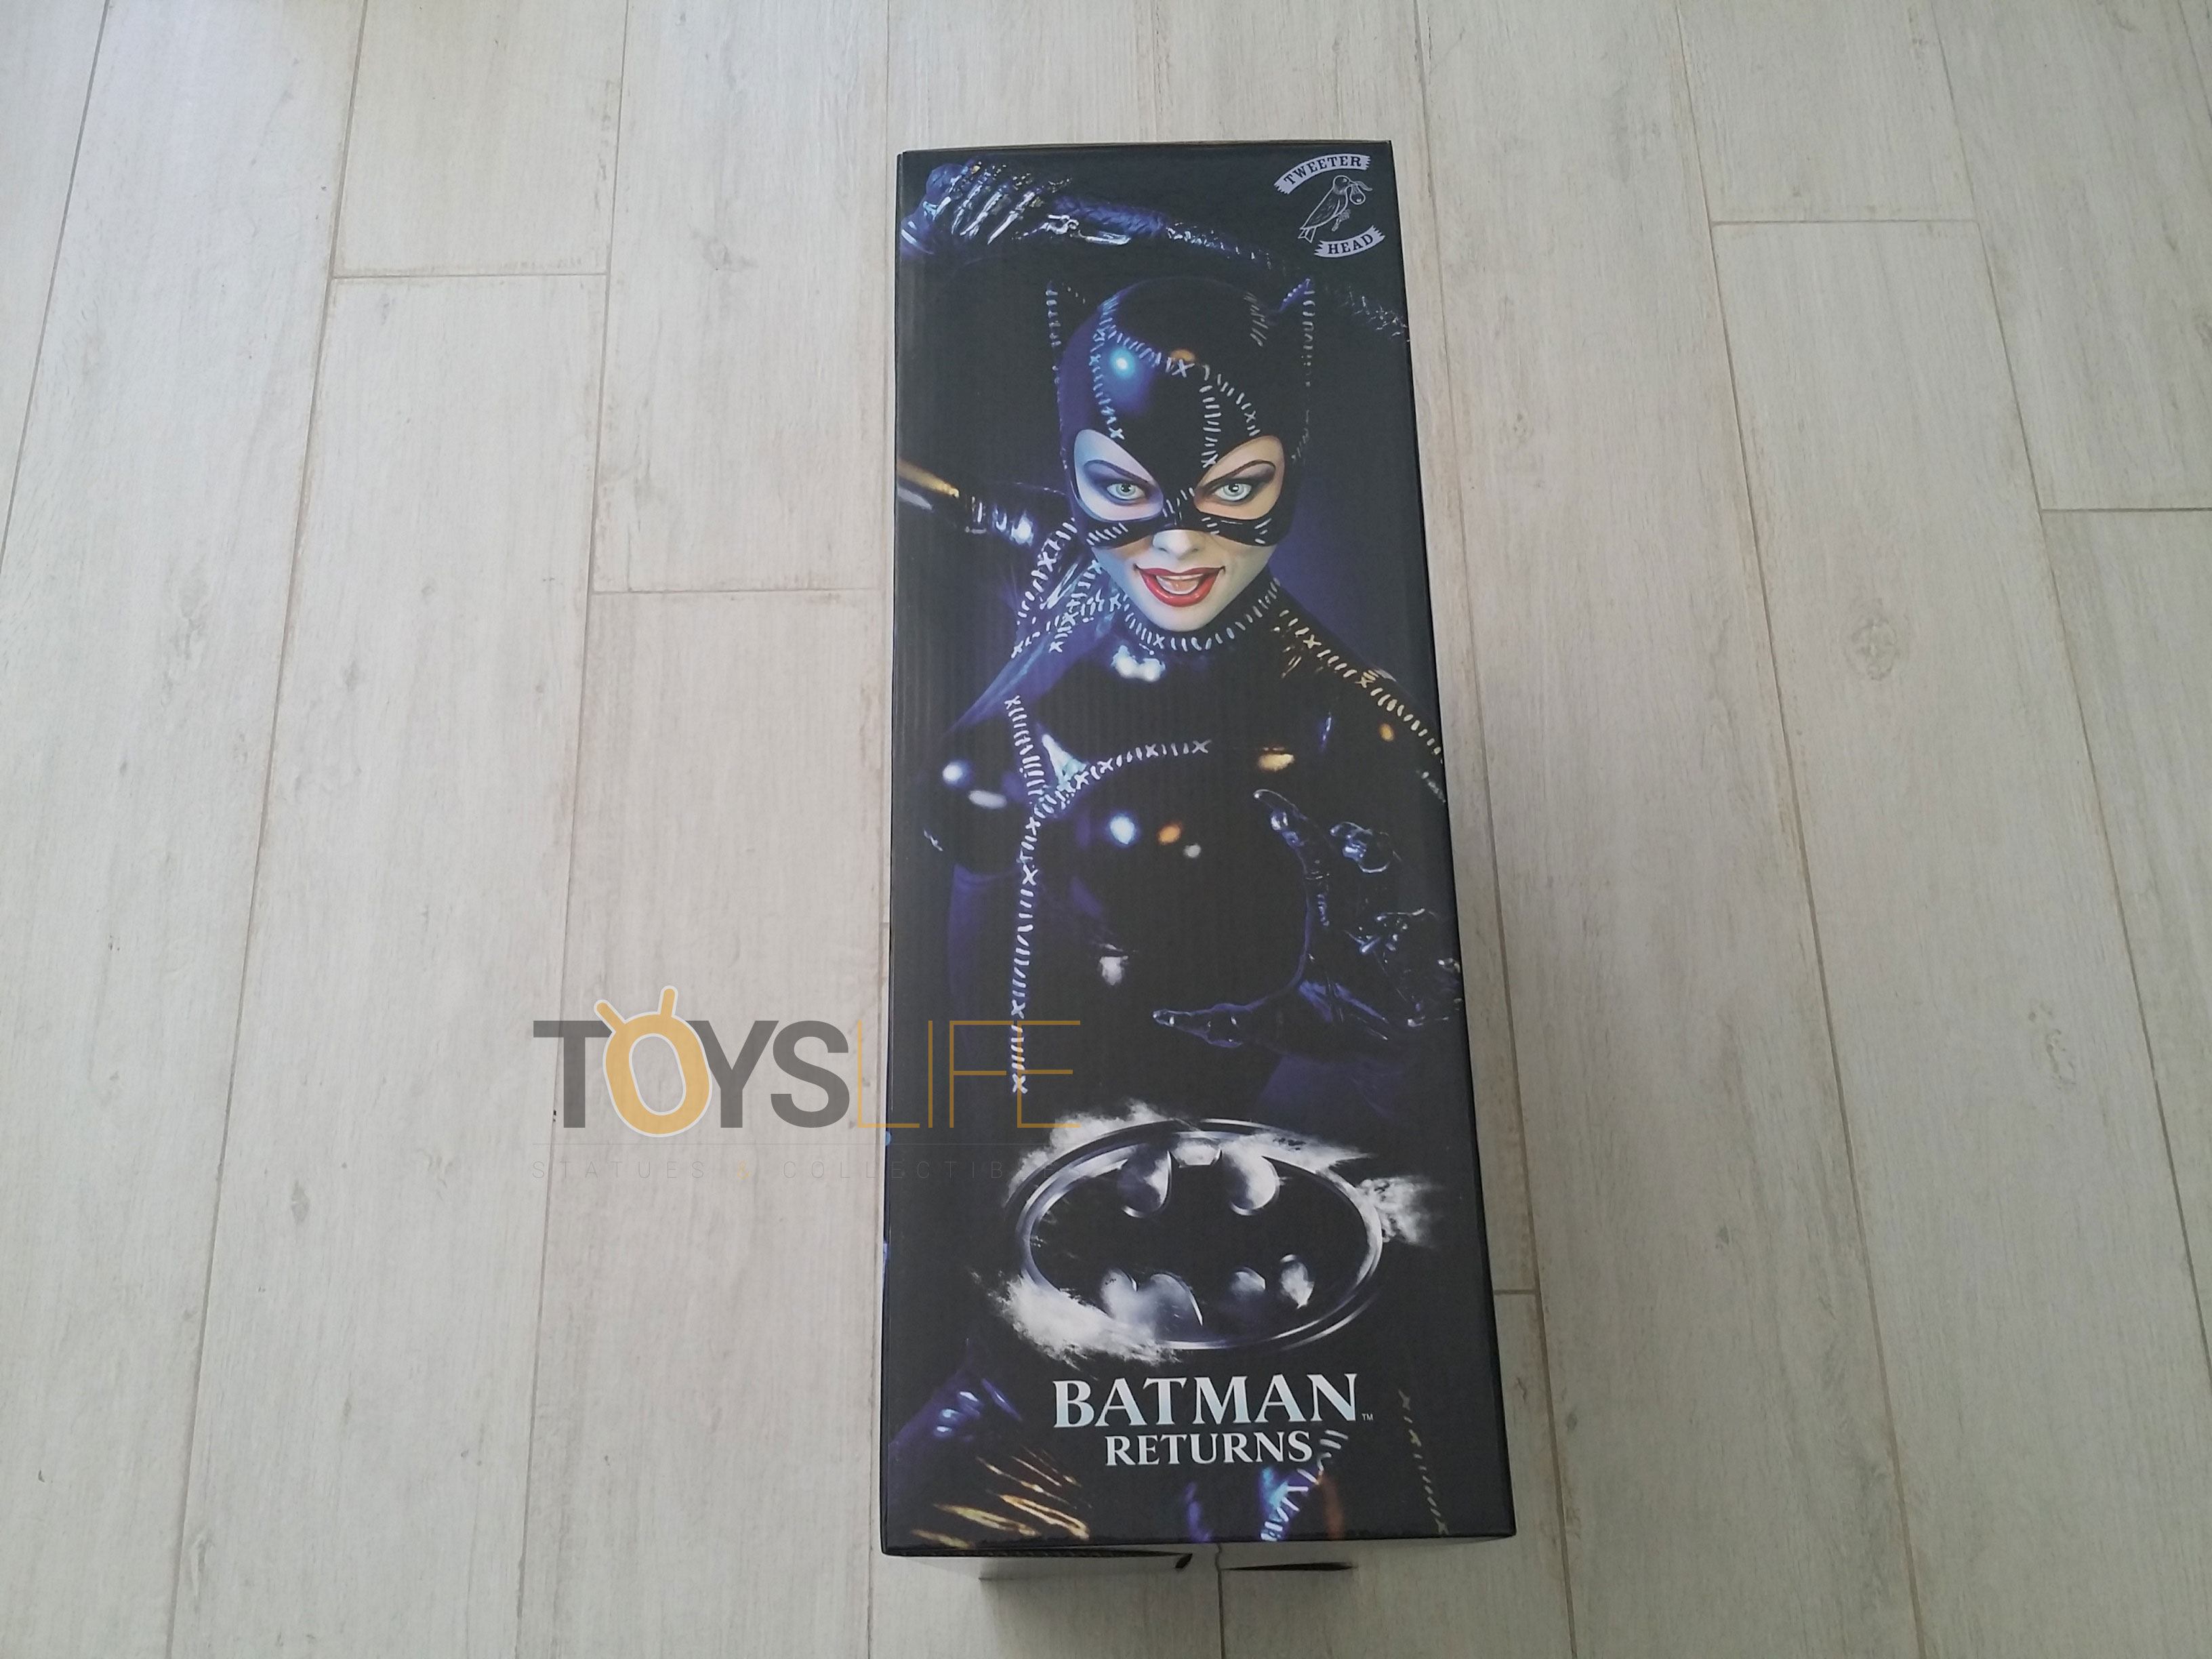 tweeterhead-catwoman-michelle-pfeiffer-maquette-toyslife-review-02